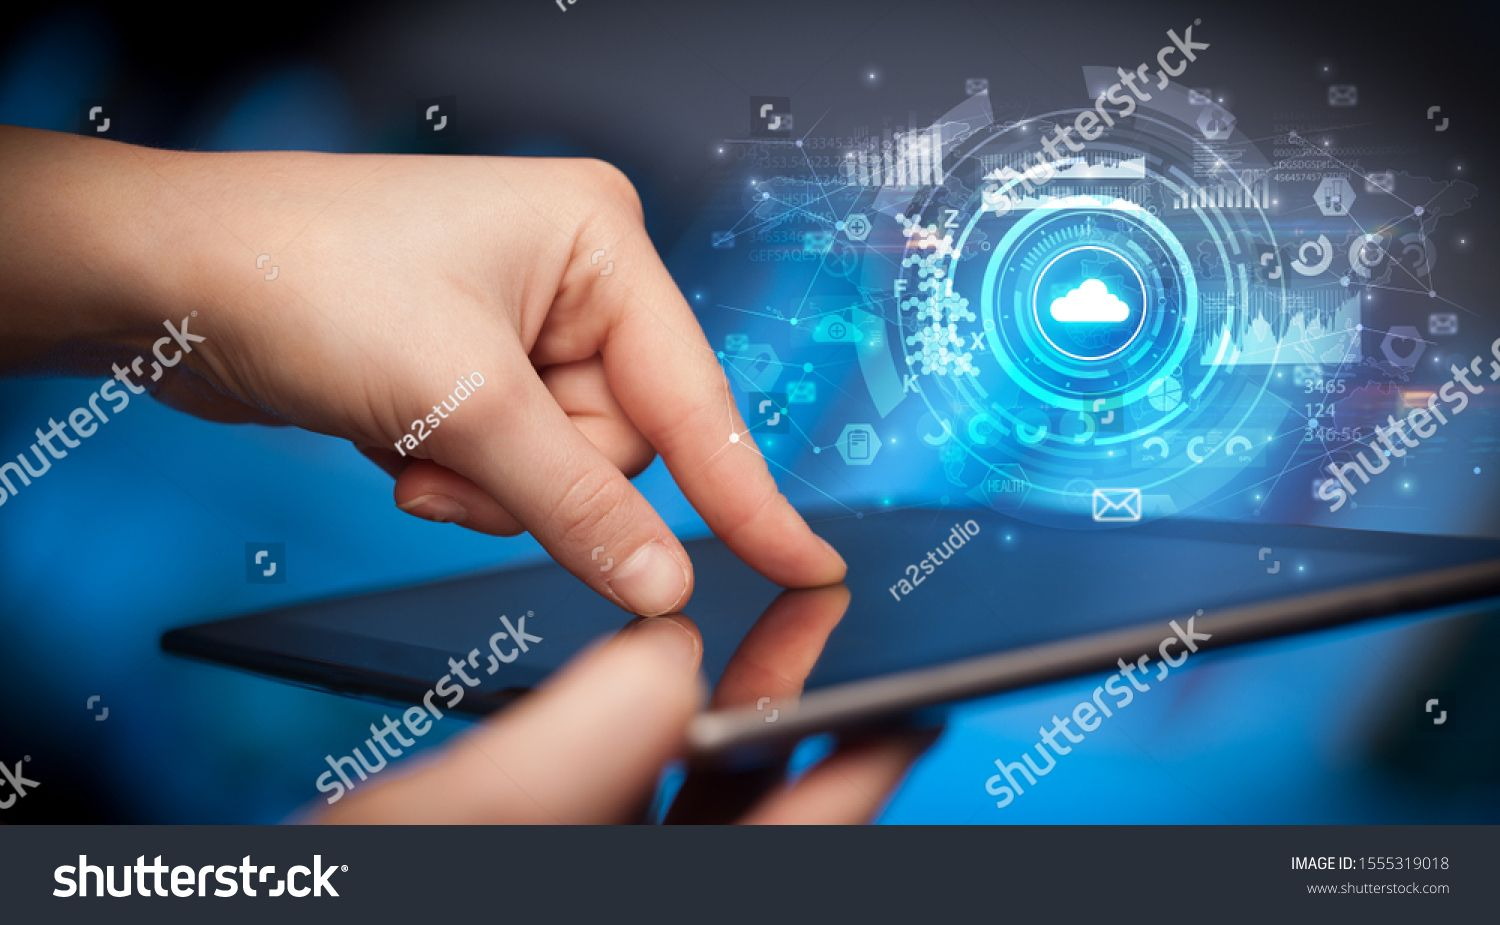 Hand holding tablet with cloud storage technology concept